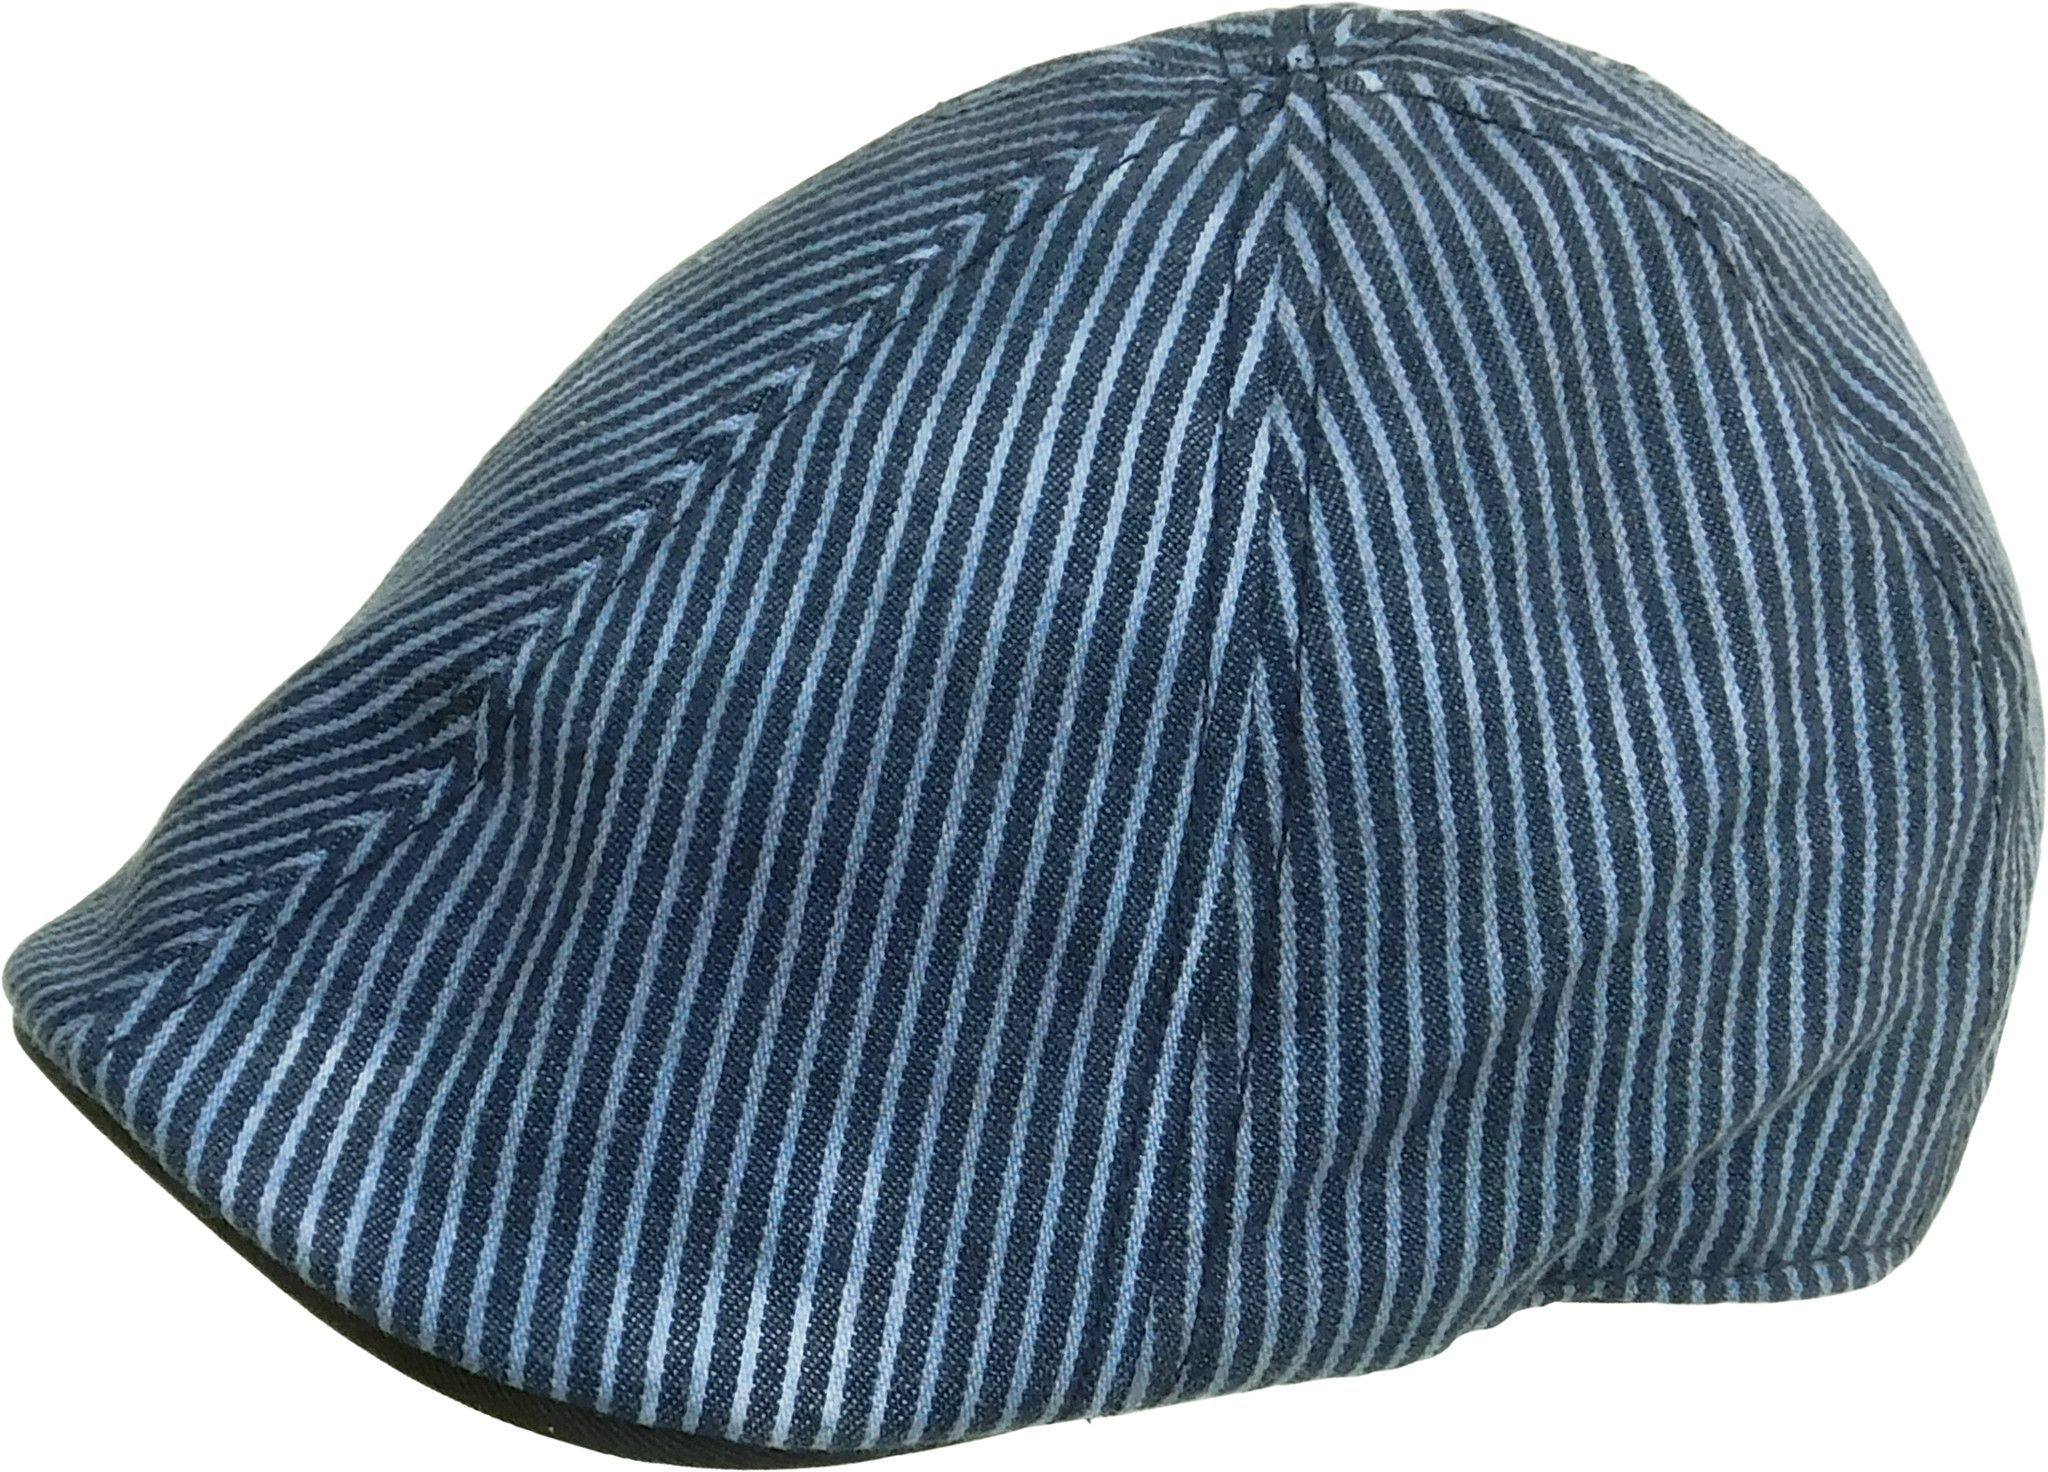 ccbe5a682 Brooklyn Hat Co Union Six Panel Newsboy Pub Cap | Products | News ...